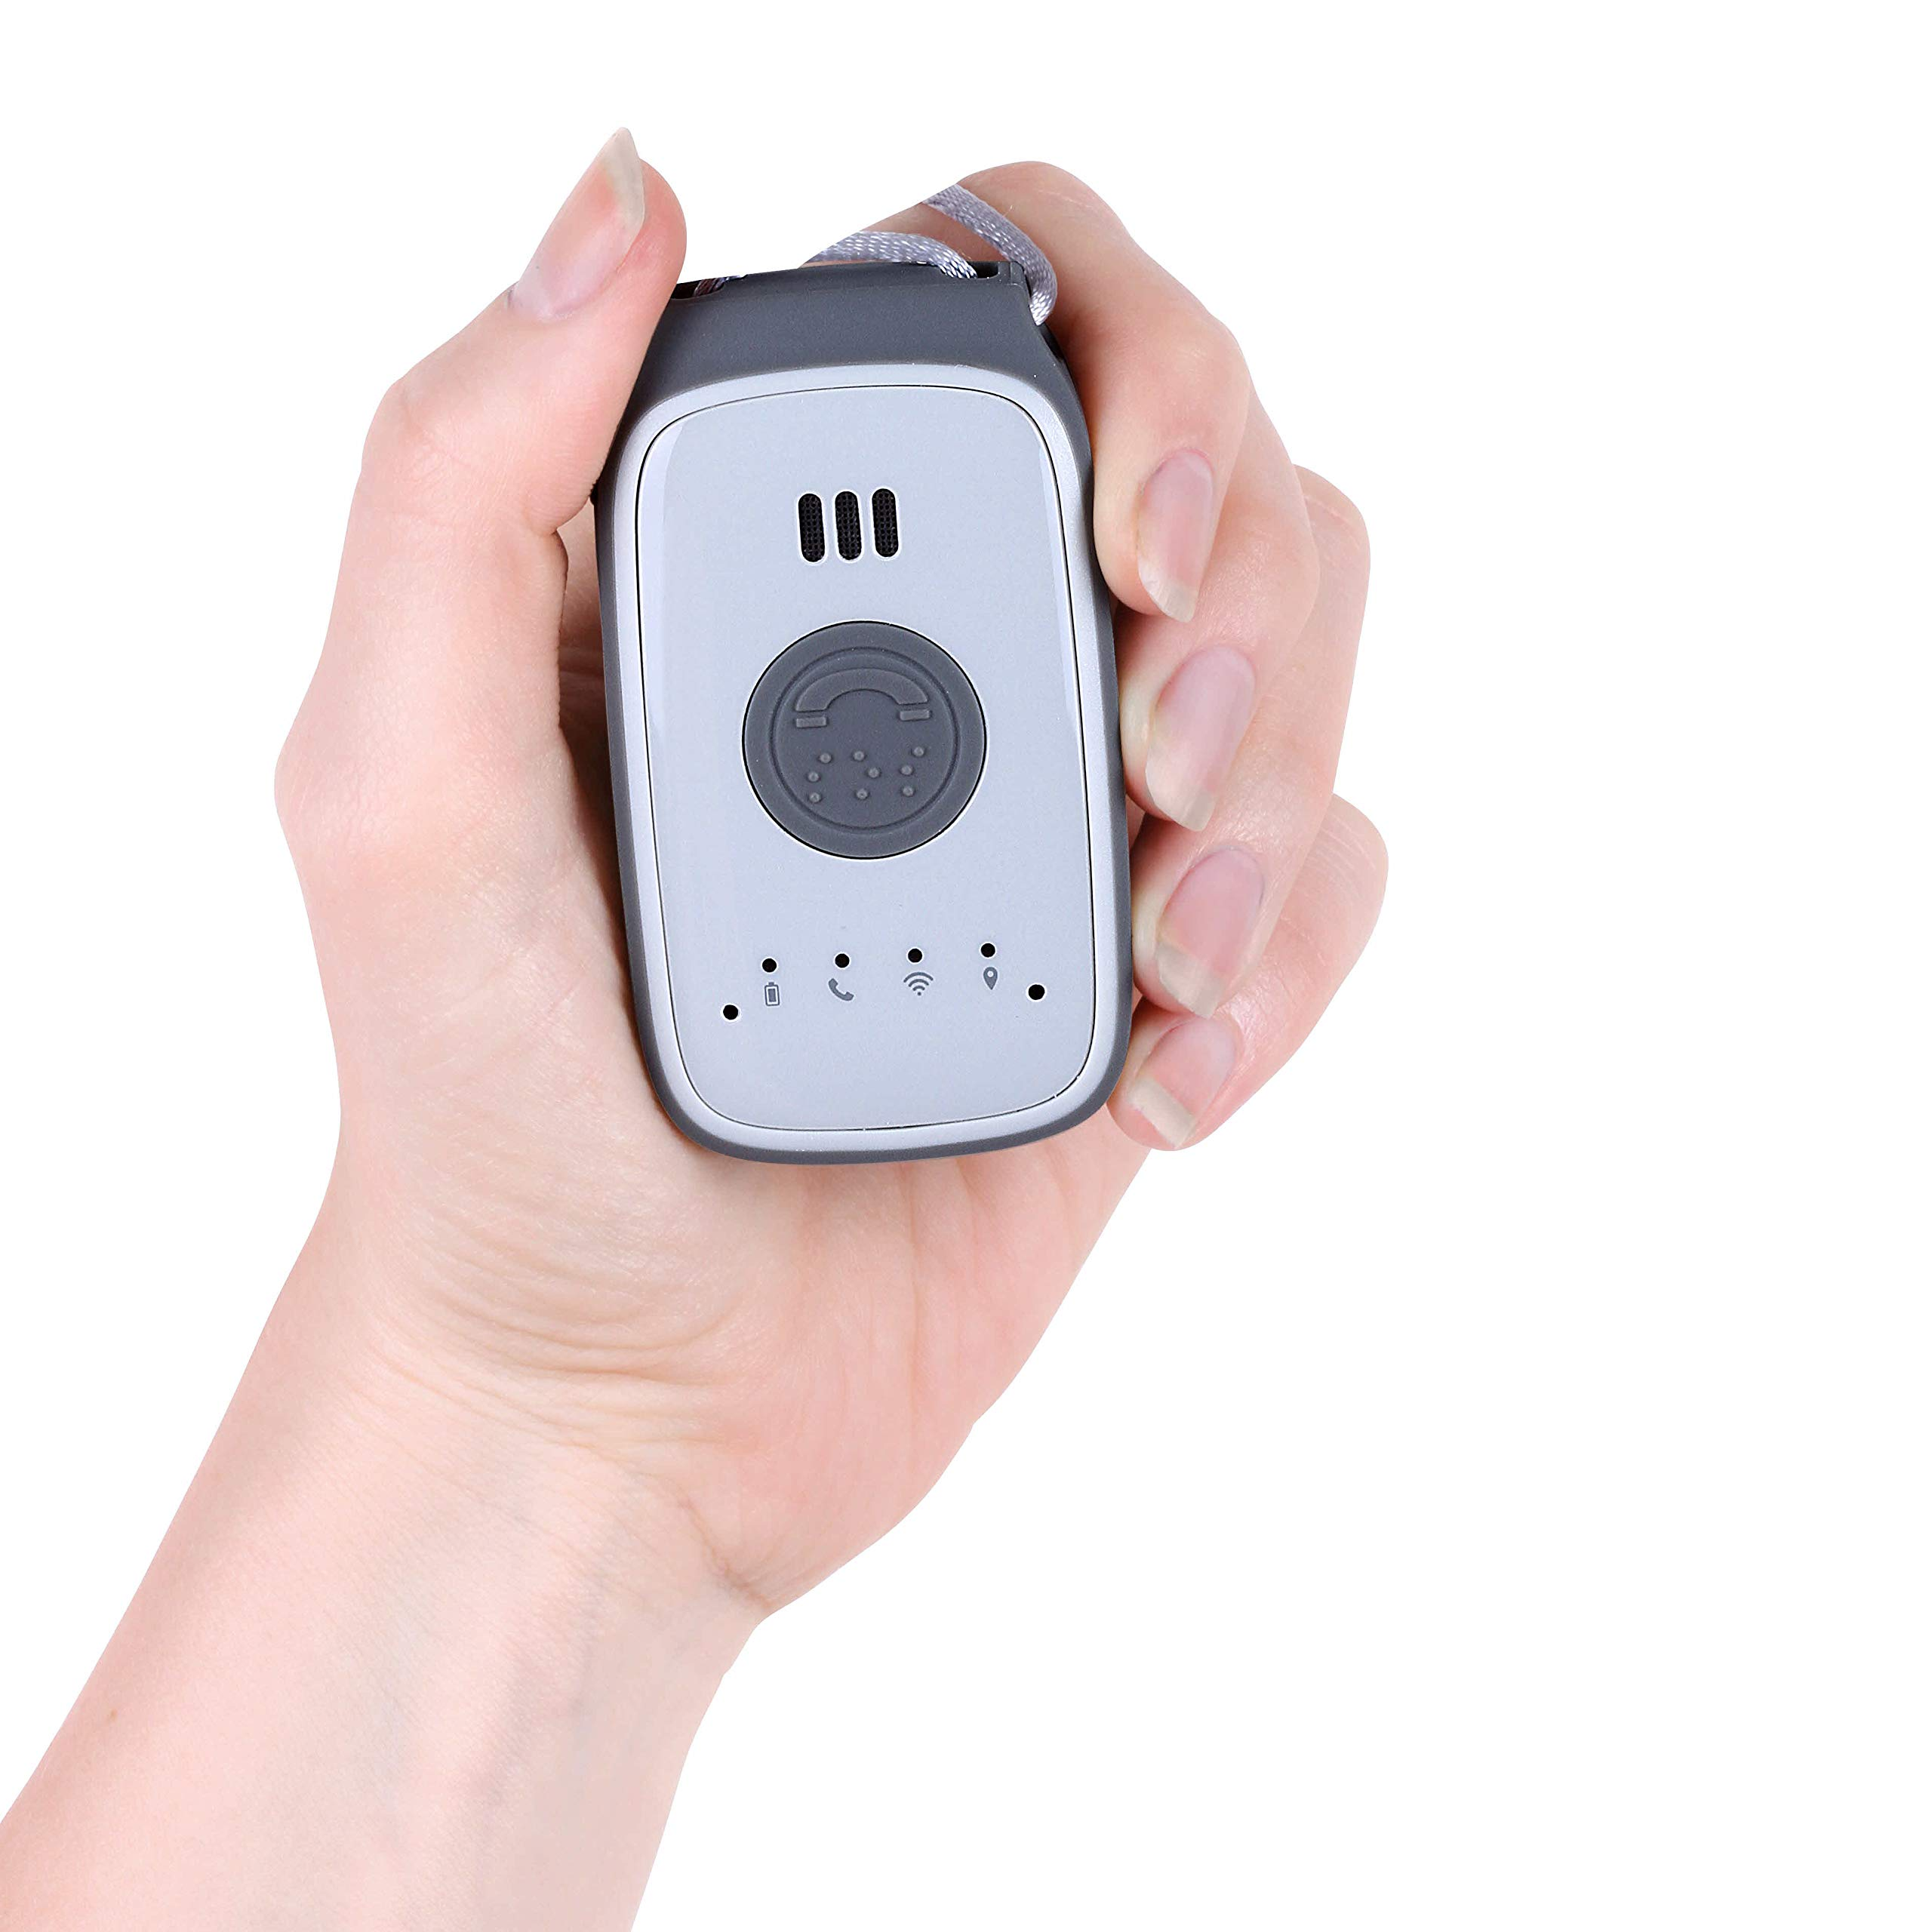 LifeStation Mobile GPS Medical Alert - All-in-one-System for Seniors On-The-Go. Nationwide GPS and WiFi Coverage. Includes 6 Free Months of 24/7 Emergency Monitoring. by LifeStation (Image #5)